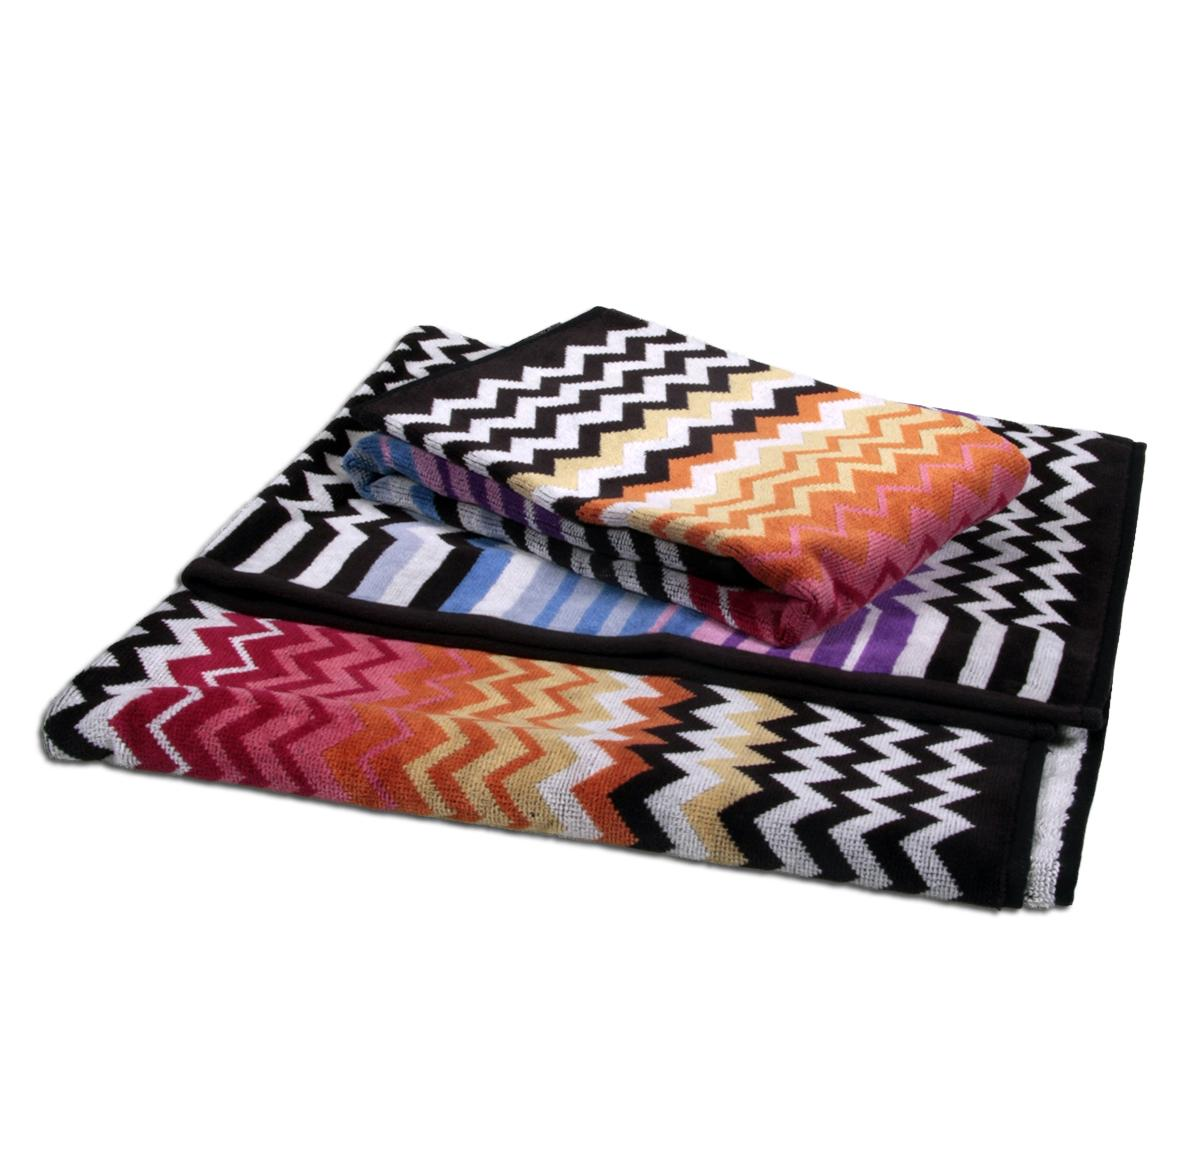 Missoni Stan Hand Towel: Missoni Home Towels 1 Bath Sheet + 2 Bath Towels + 2 Hand